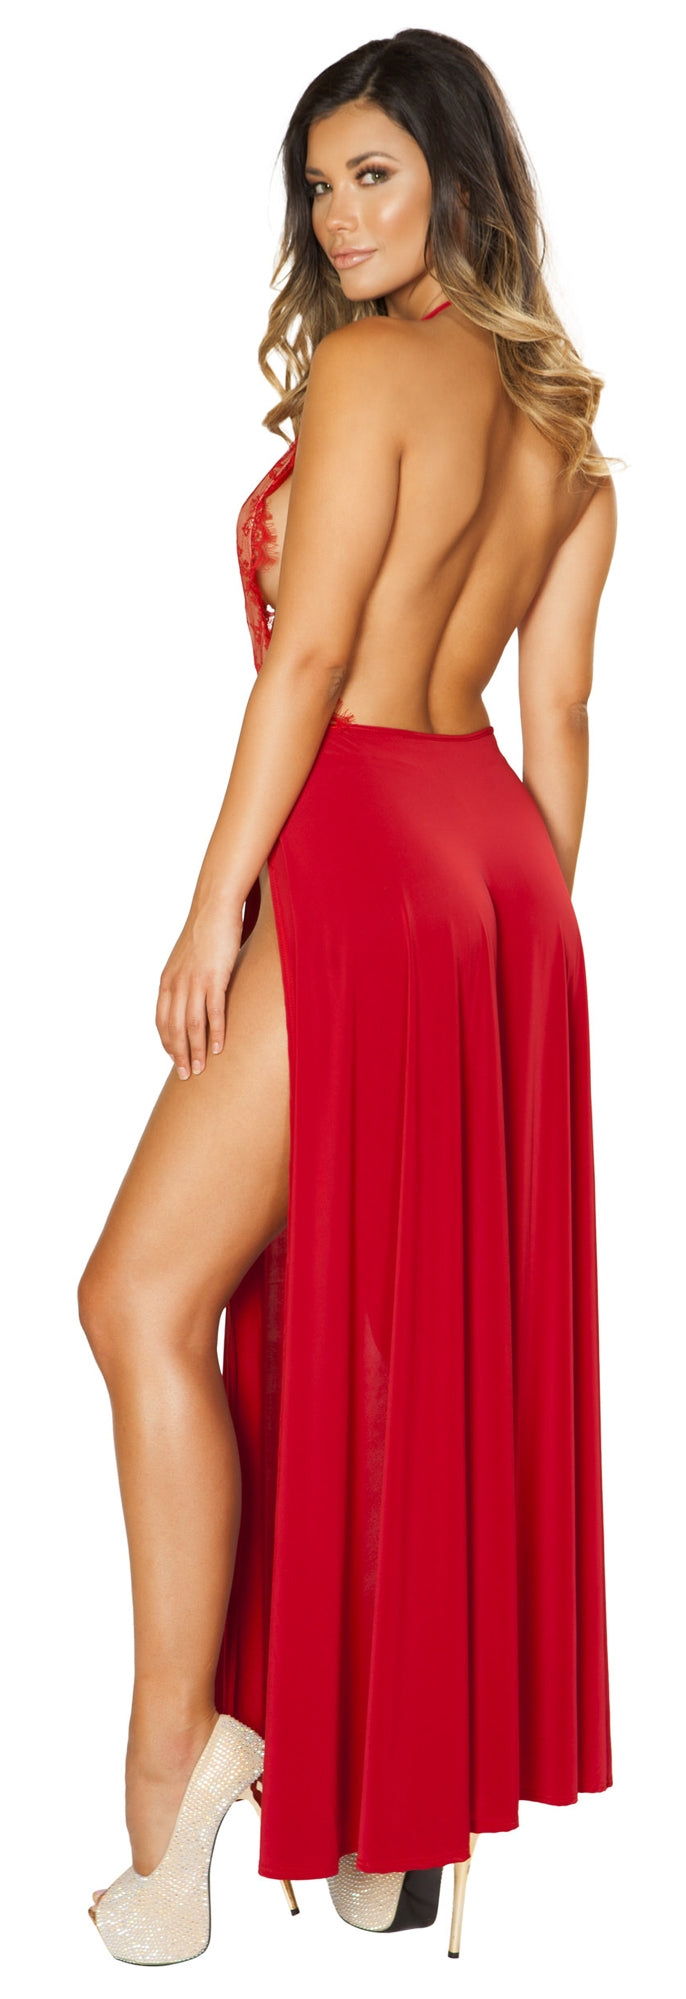 RM-3530 Red Lace Maxi Dress back